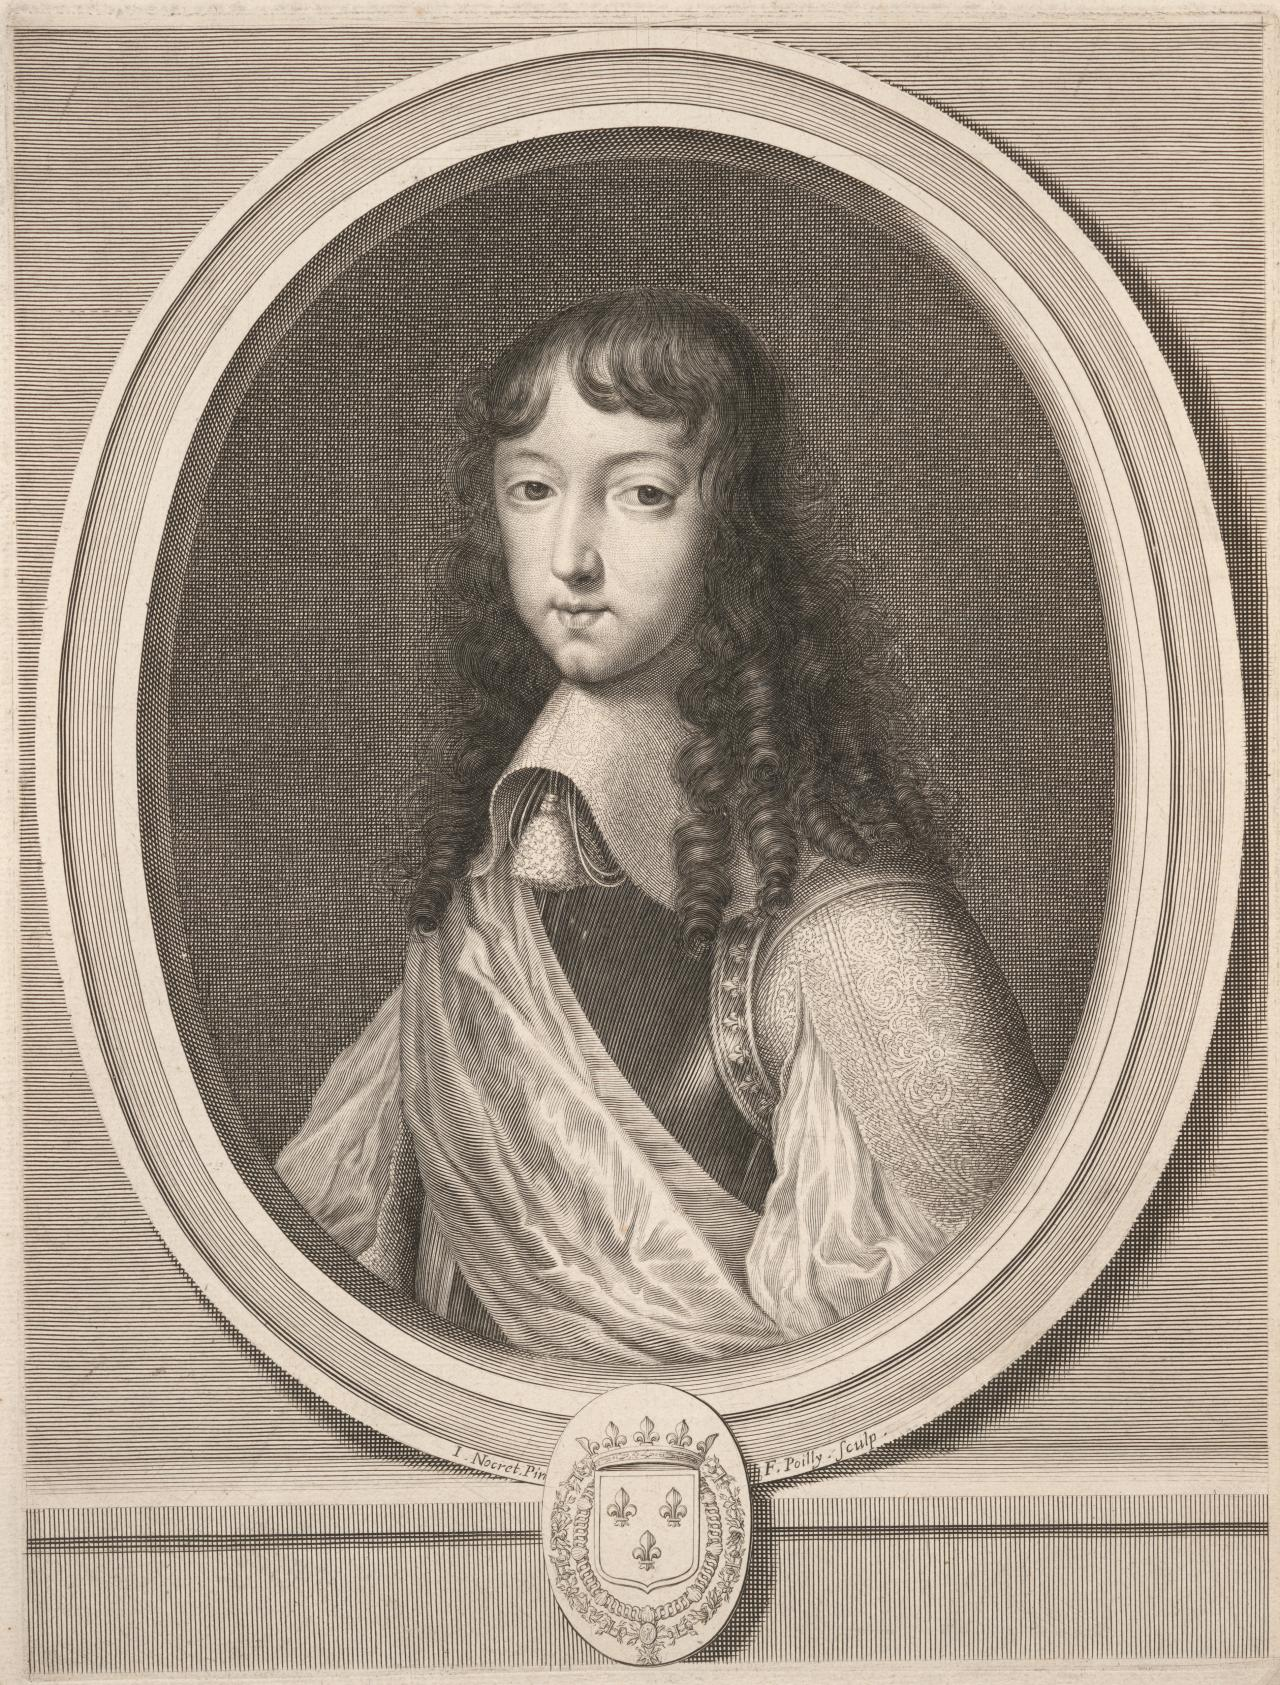 Philippe de France (brother of Louis XIV )